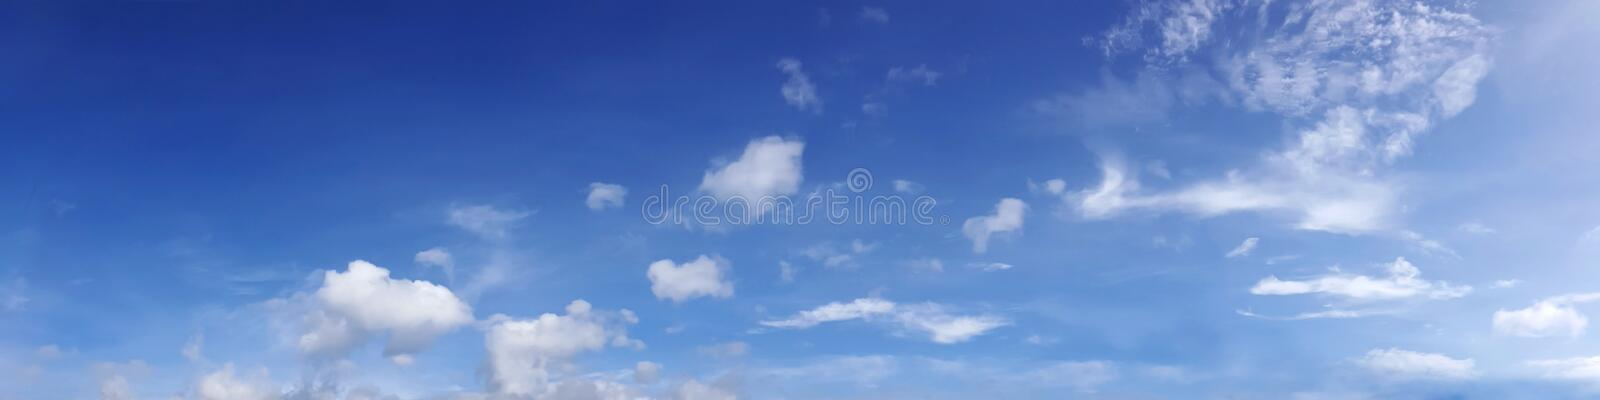 Vibrant color panoramic sky with cloud on a sunny day. Beautiful cirrus cloud. Panorama high resolution photograph royalty free stock images